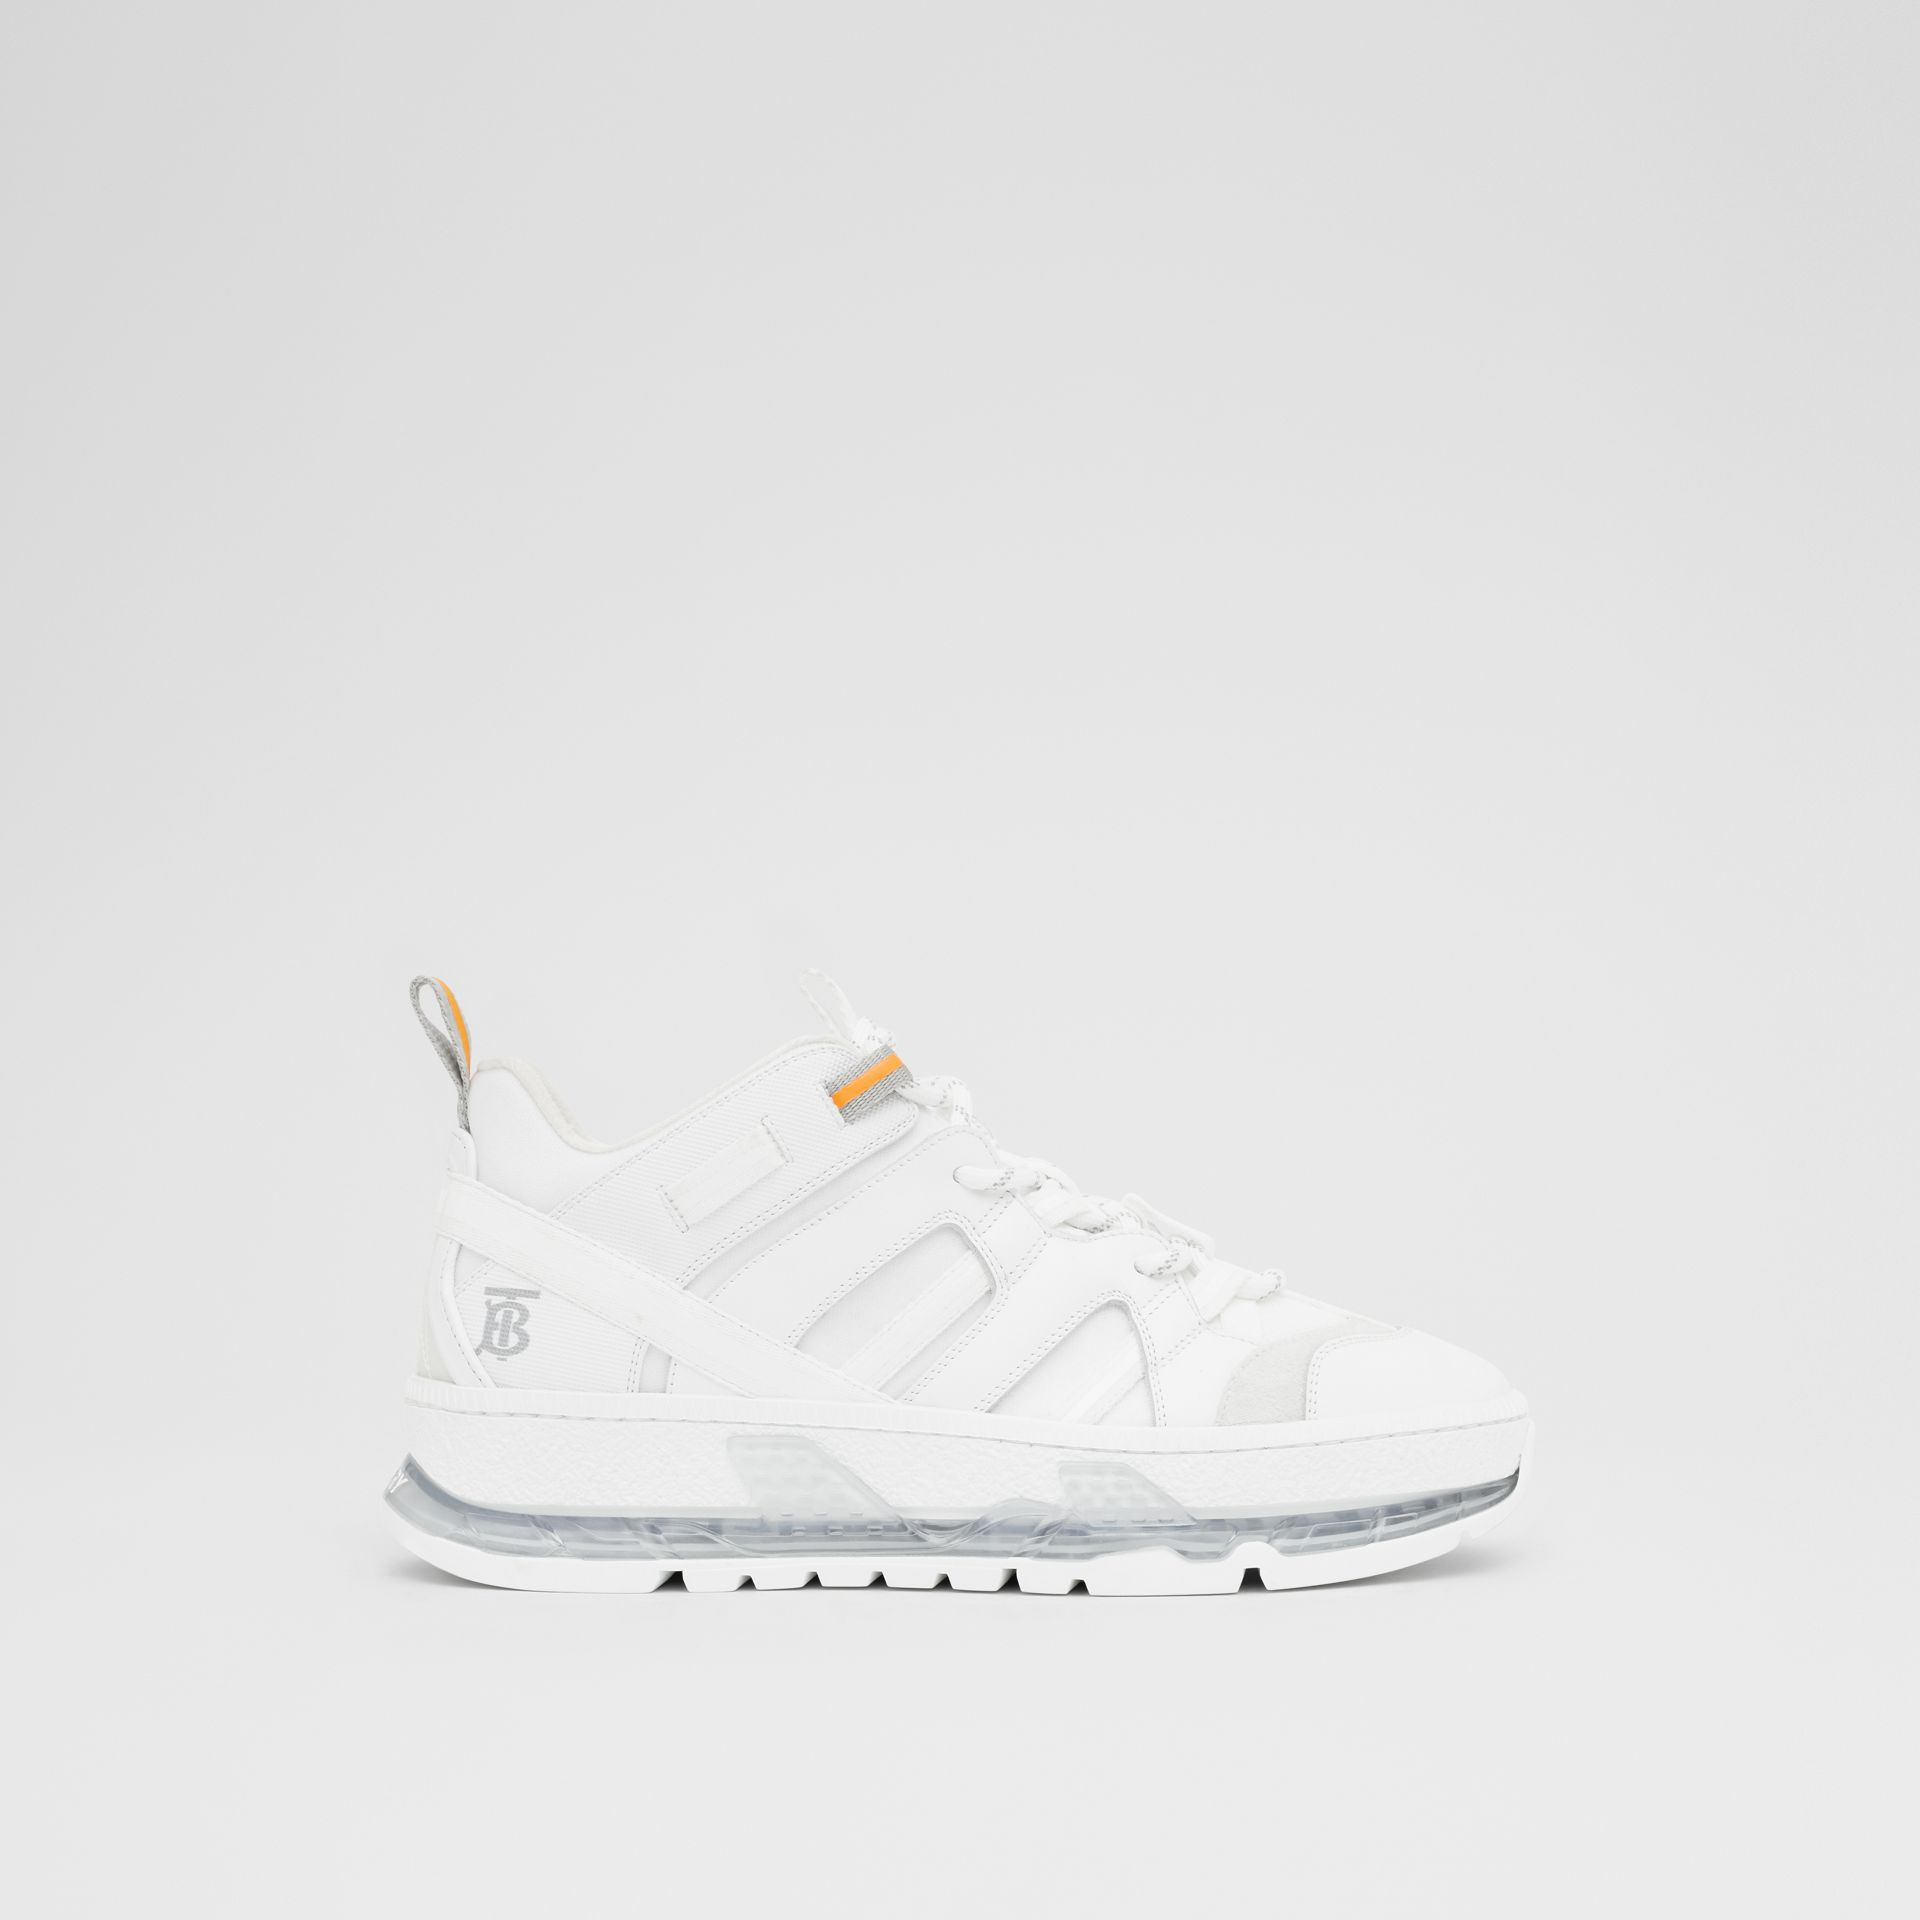 Nylon and Leather Union Sneakers in Optic White - Women | Burberry - gallery image 5